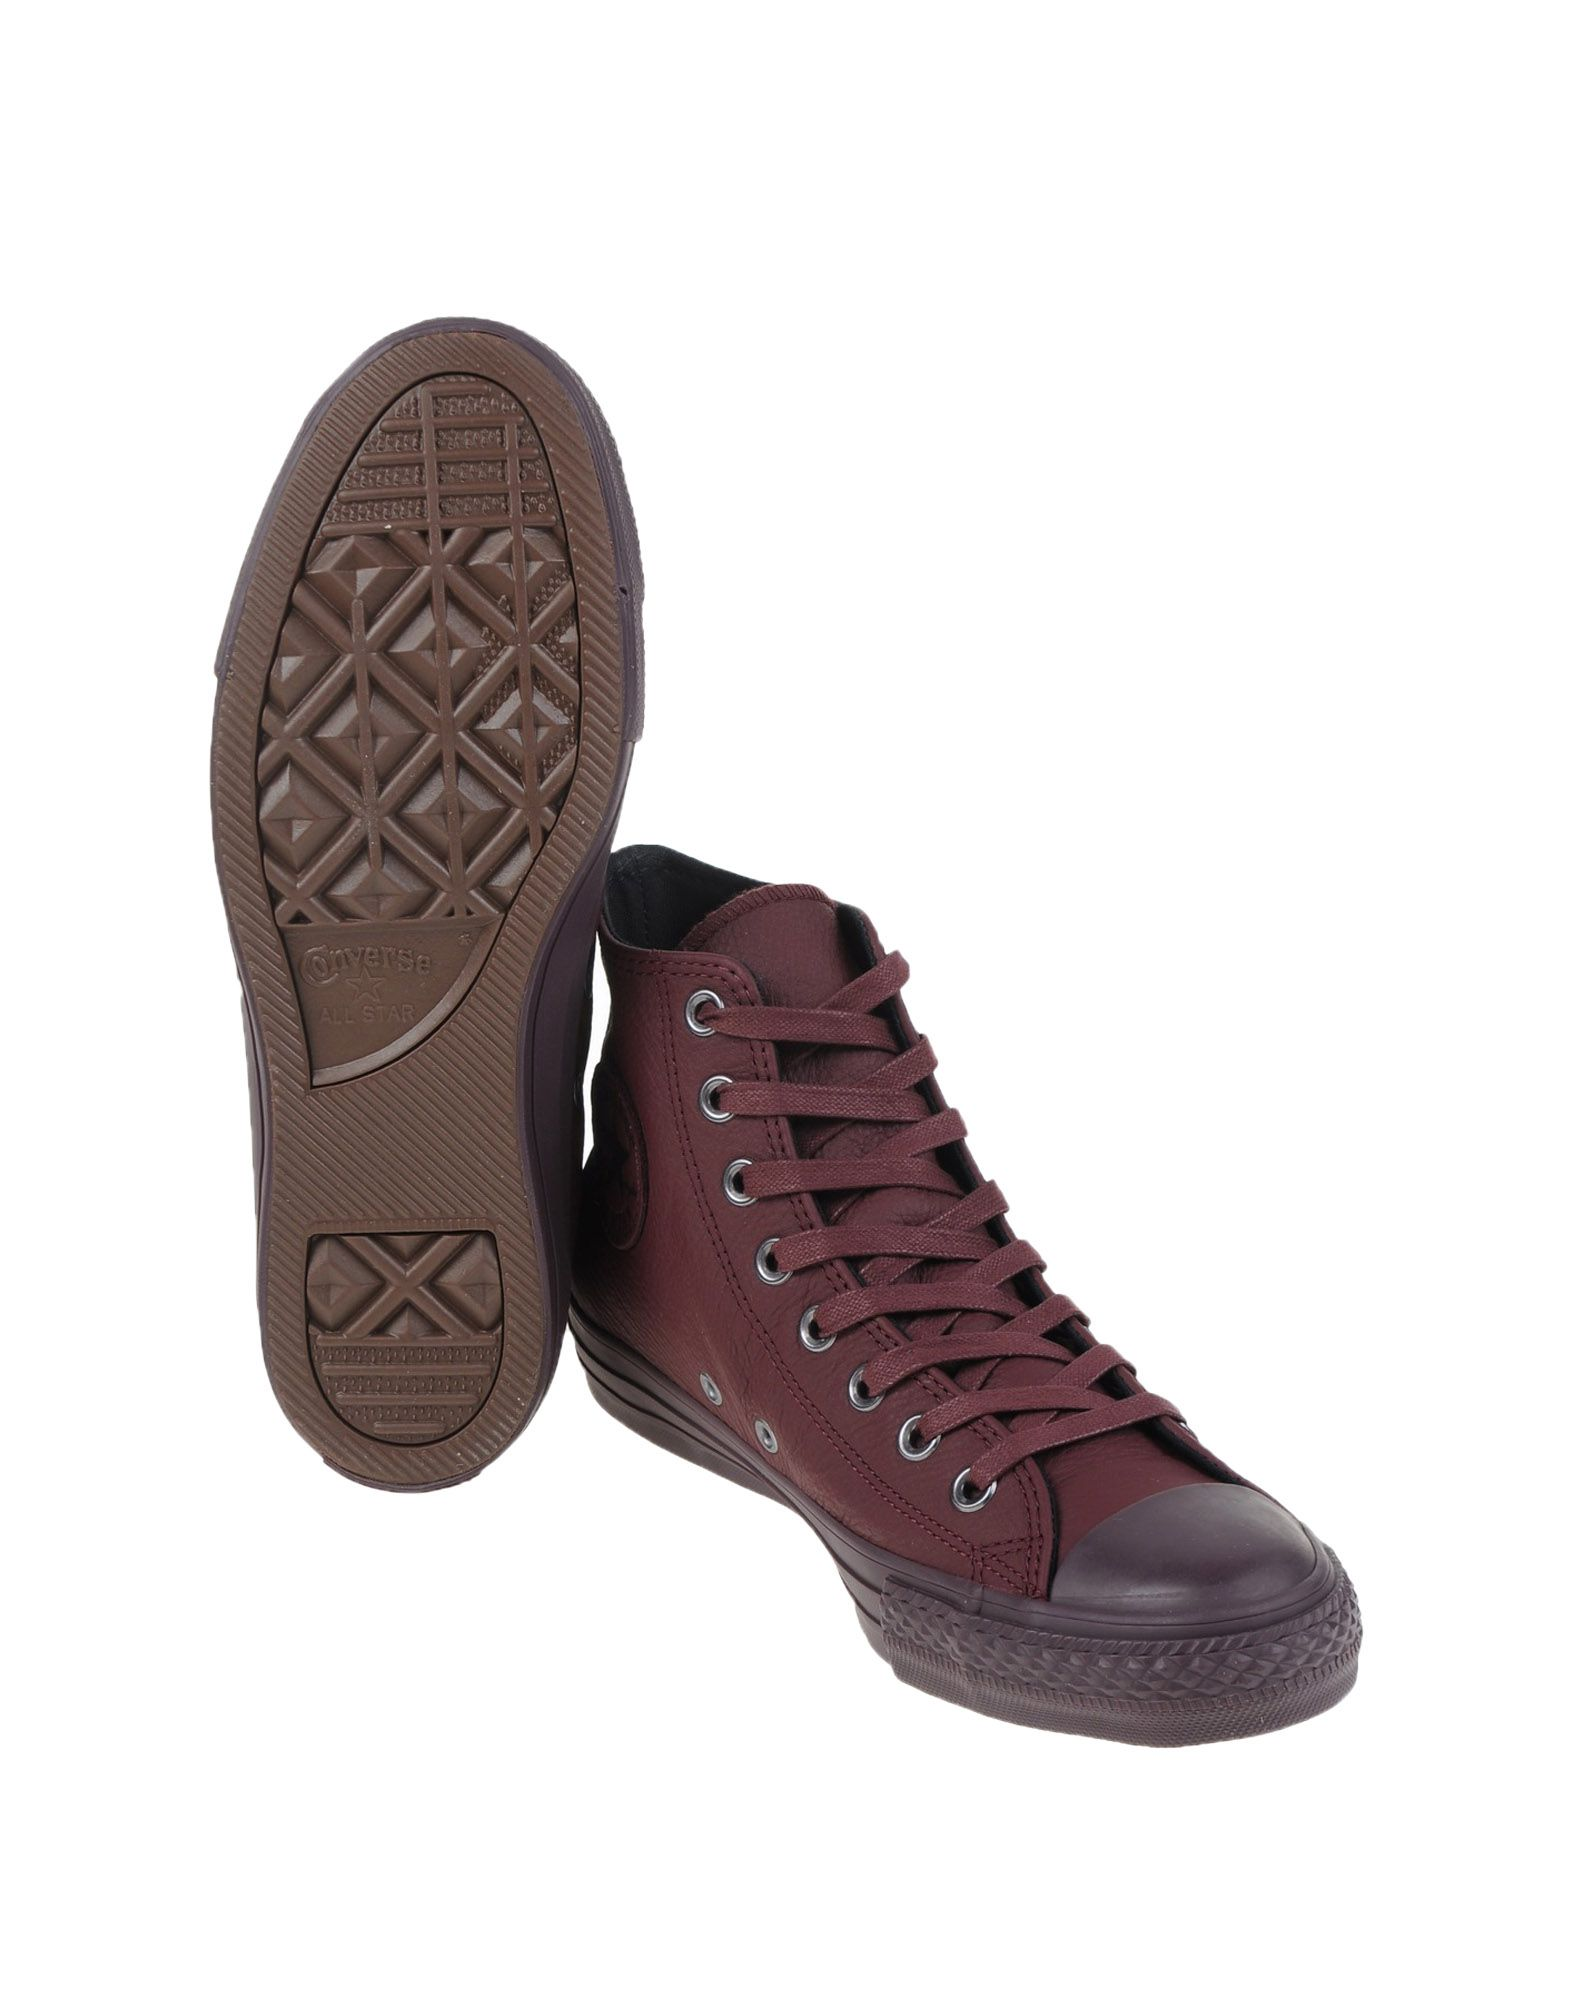 Converse All Star All Star Hi Leather Leather Leather - Sneakers - Women Converse All Star Sneakers online on  United Kingdom - 11097145TA c466bb